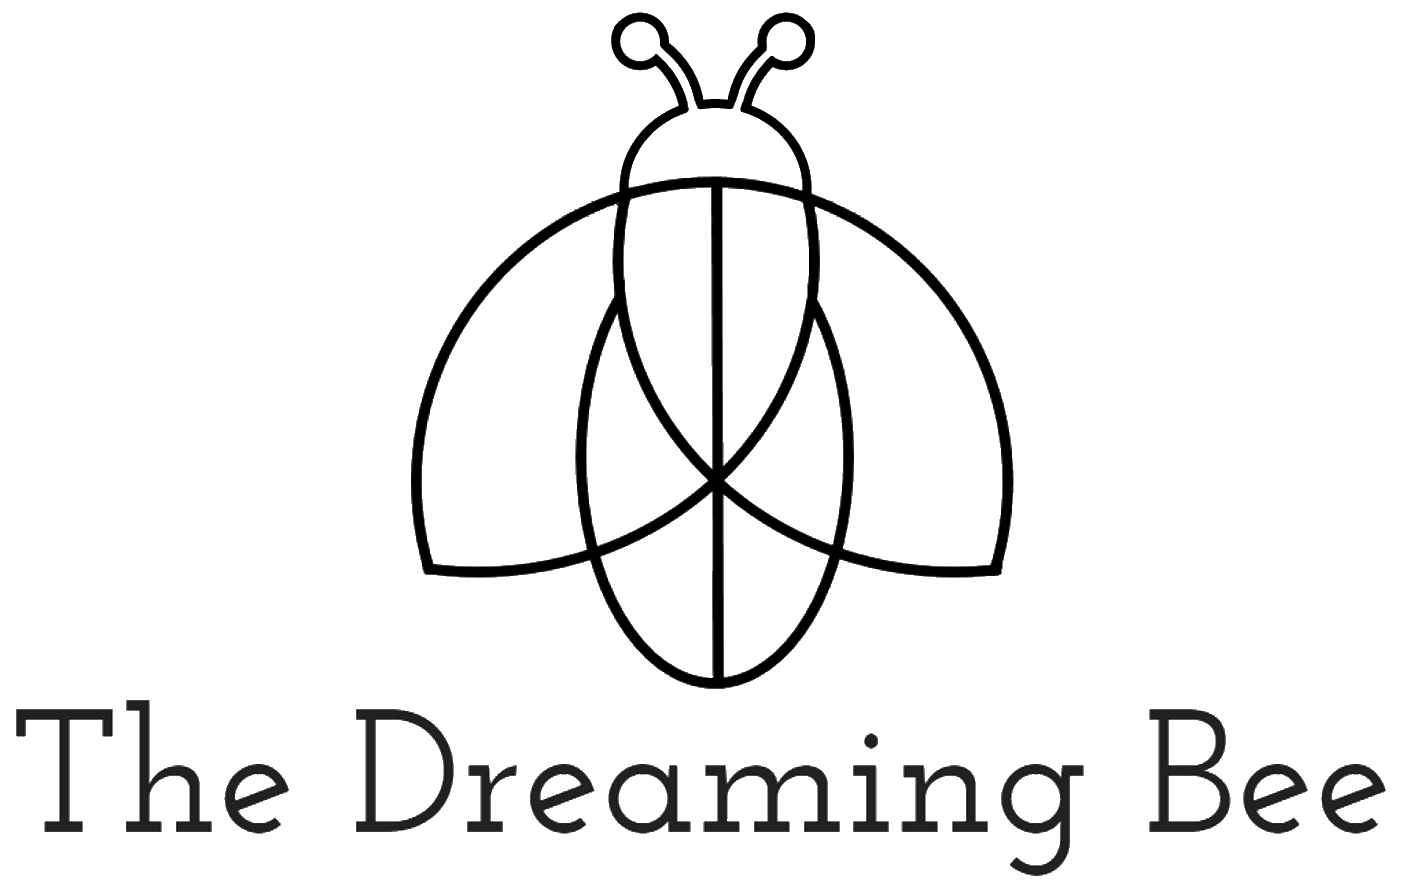 The Dreaming Bee logo